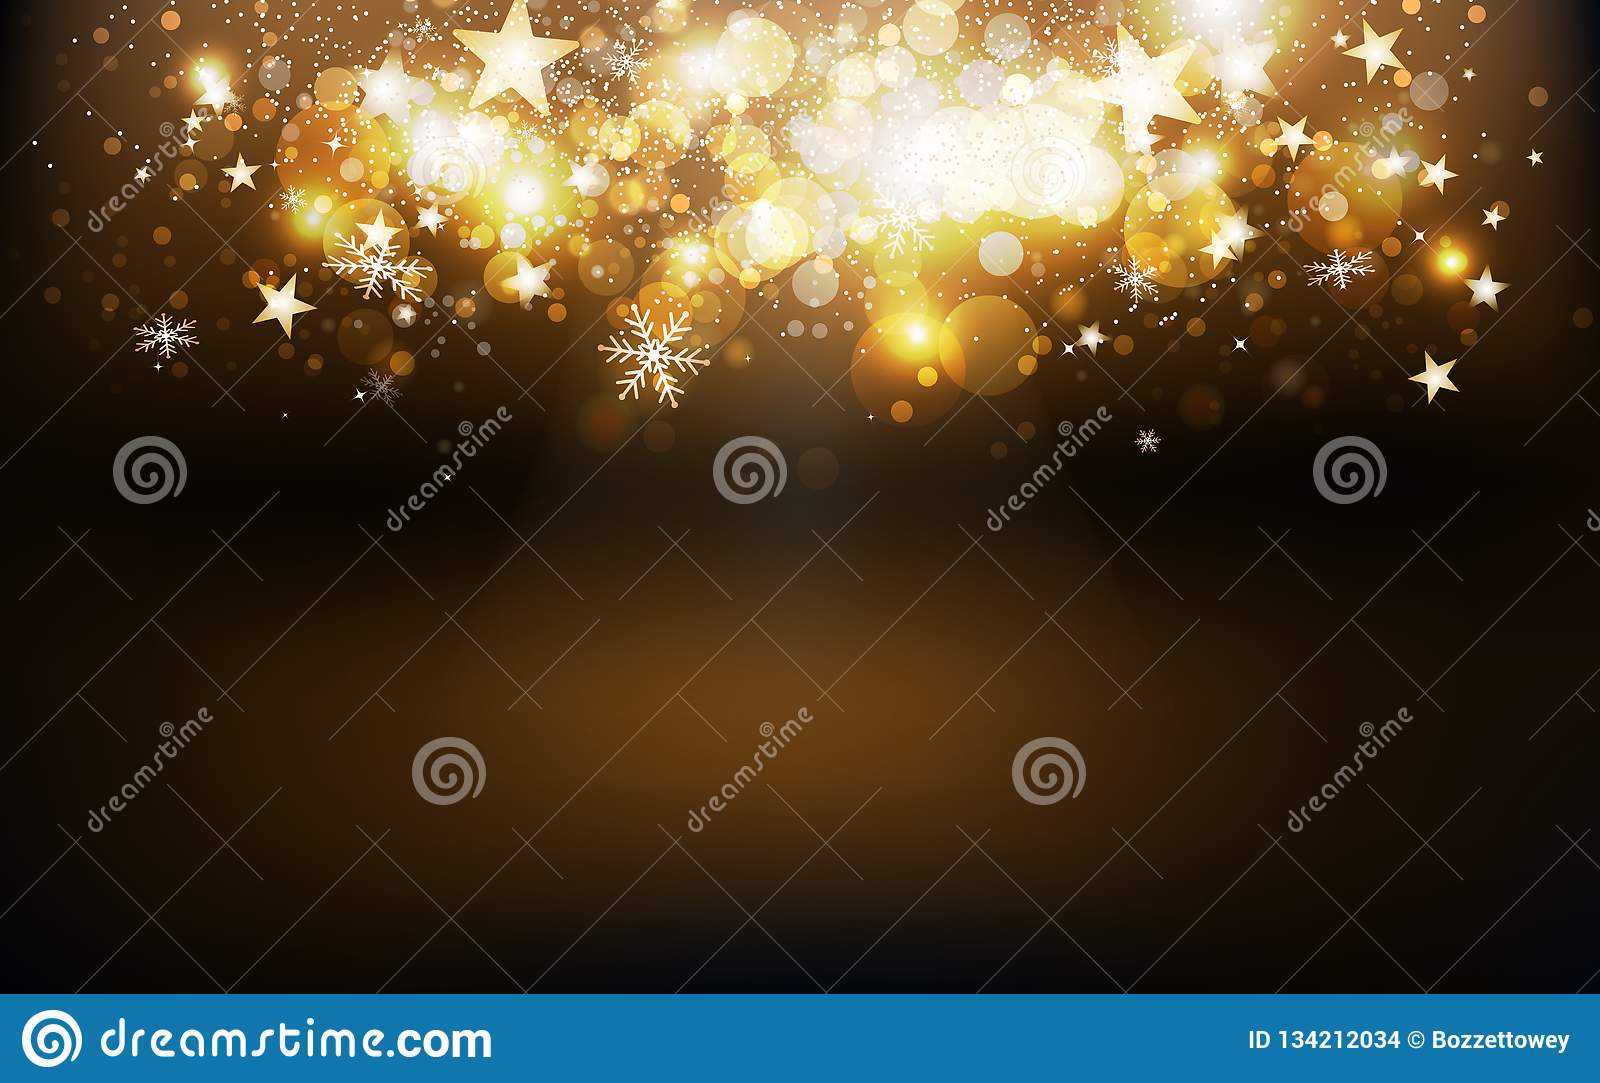 Gold shooting stars burst confetti falling holiday season, snowflakes and dust glowing blur magic fantasy on stage celebration